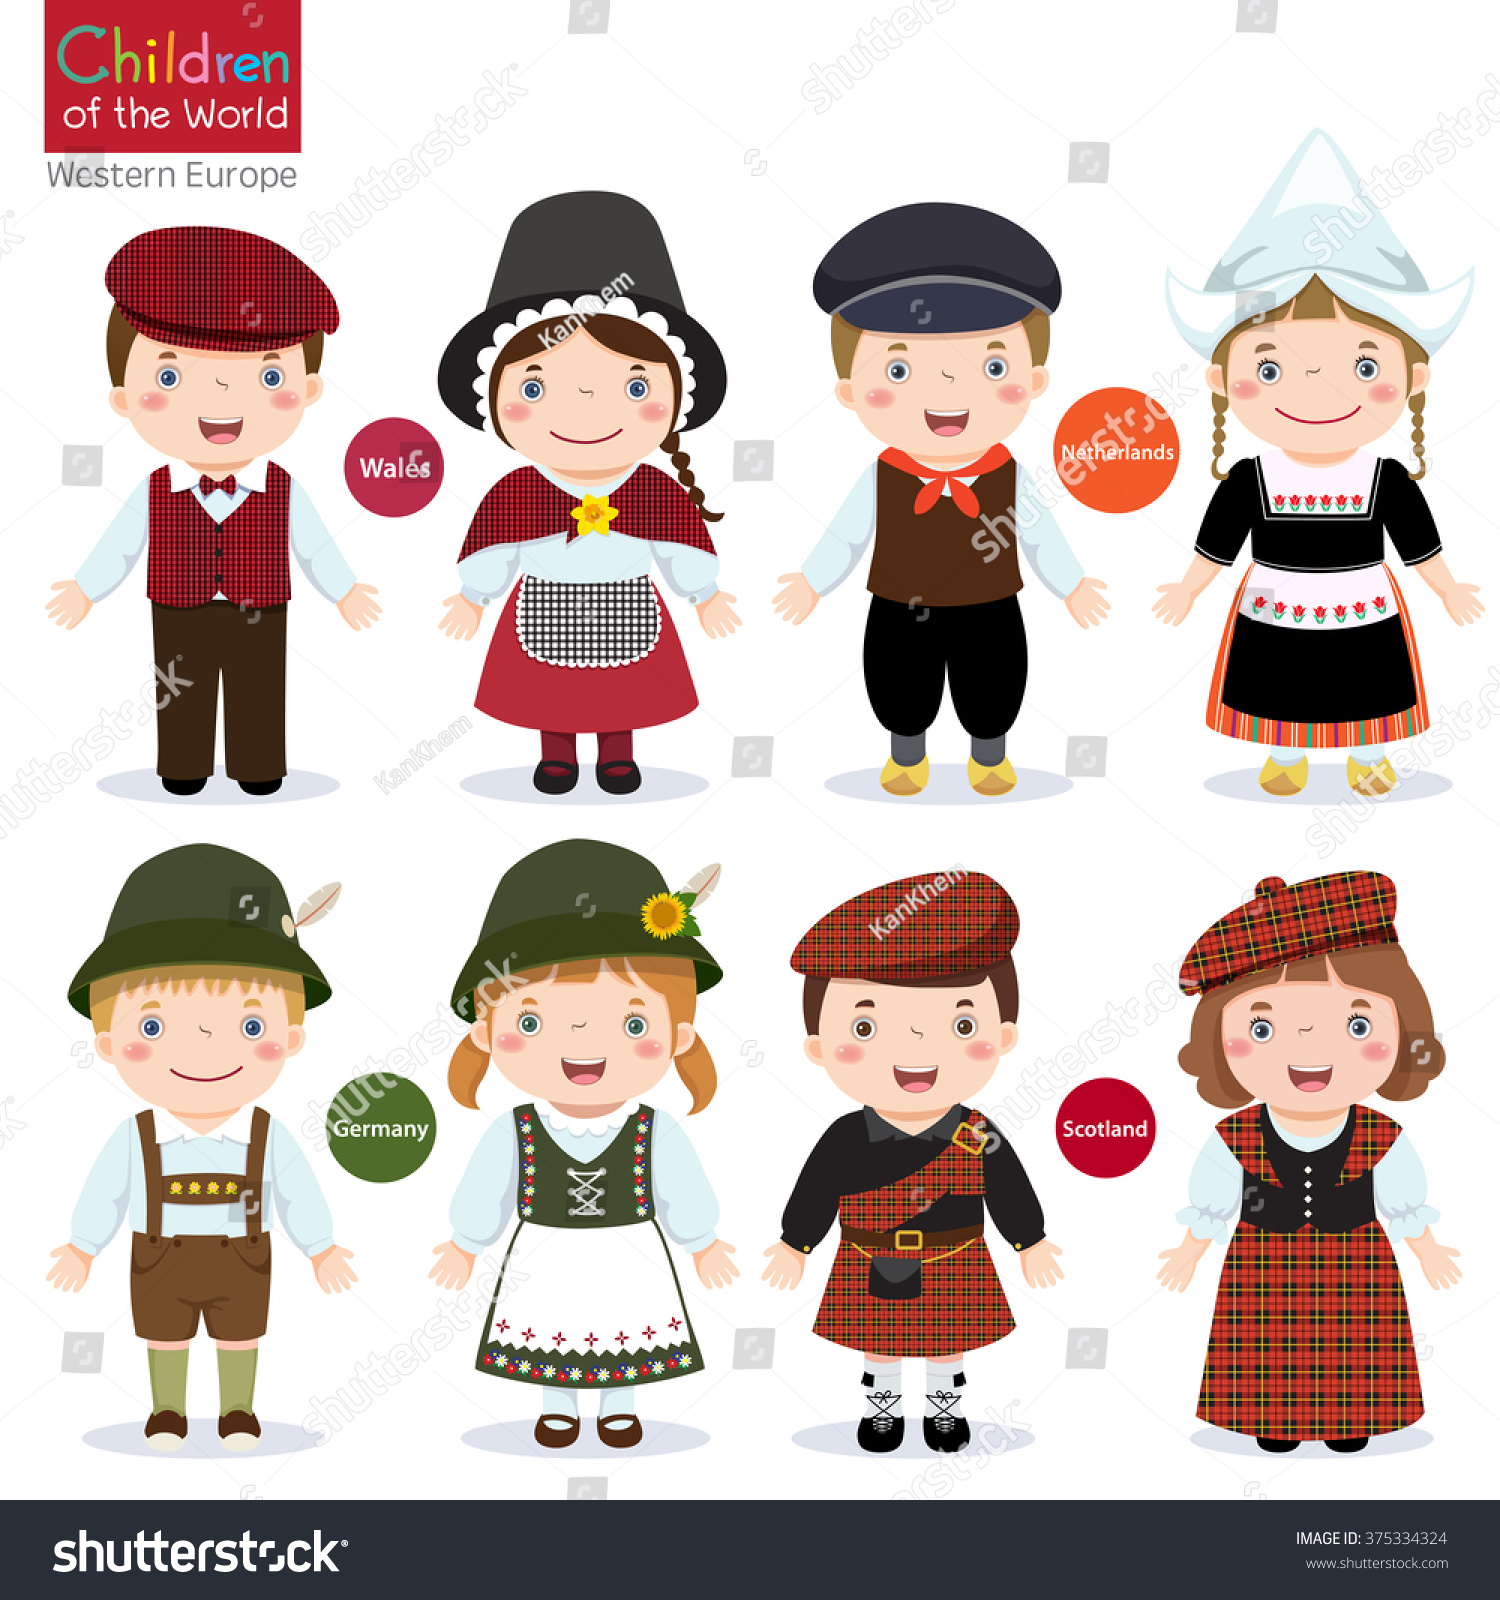 Kids Different Traditional Costumes Wales Netherlands